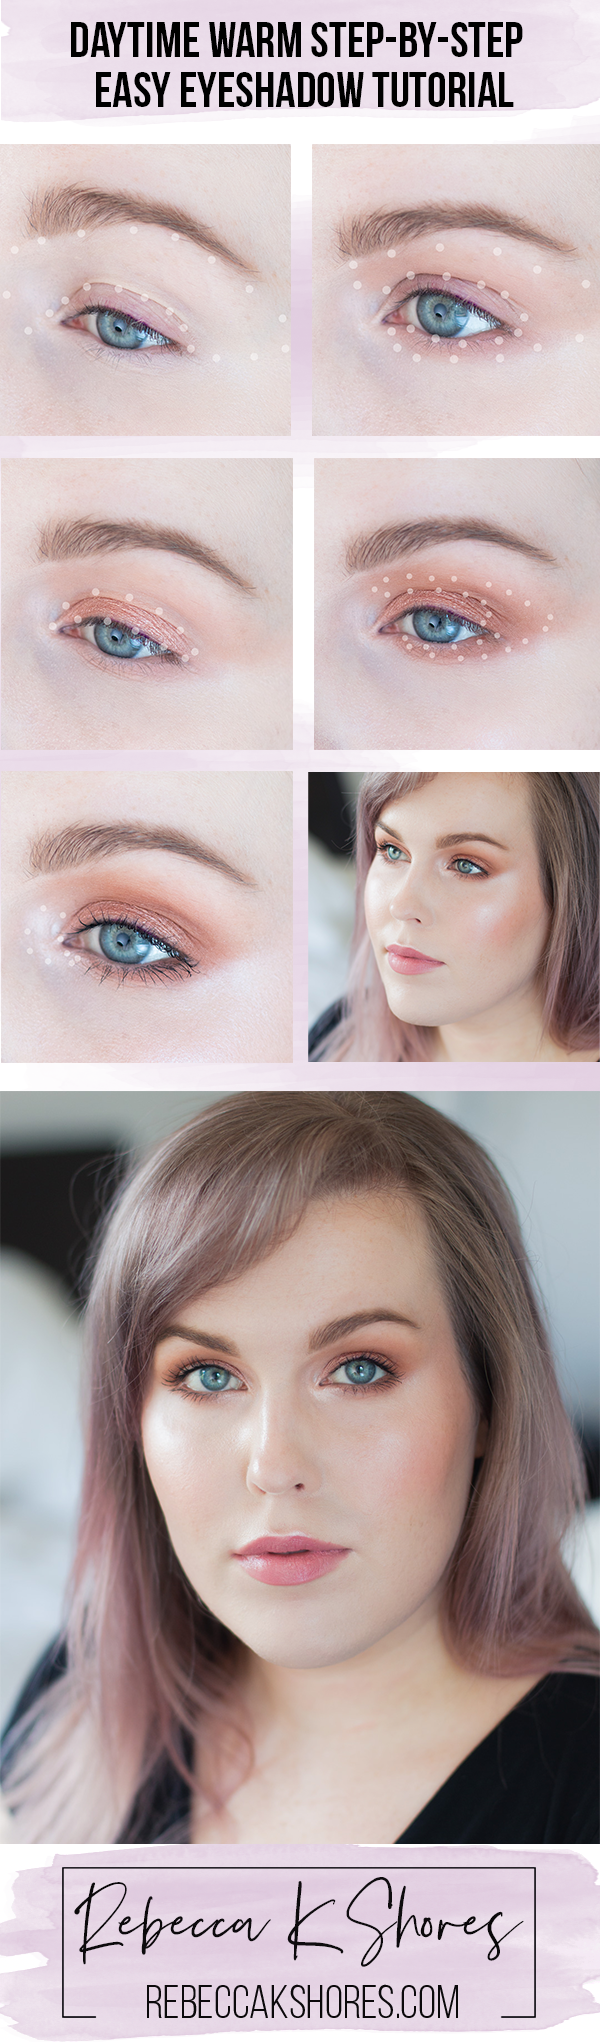 pictorial-Daytime-Warm-Step-by-Step--Eyeshadow-Tutorial.png